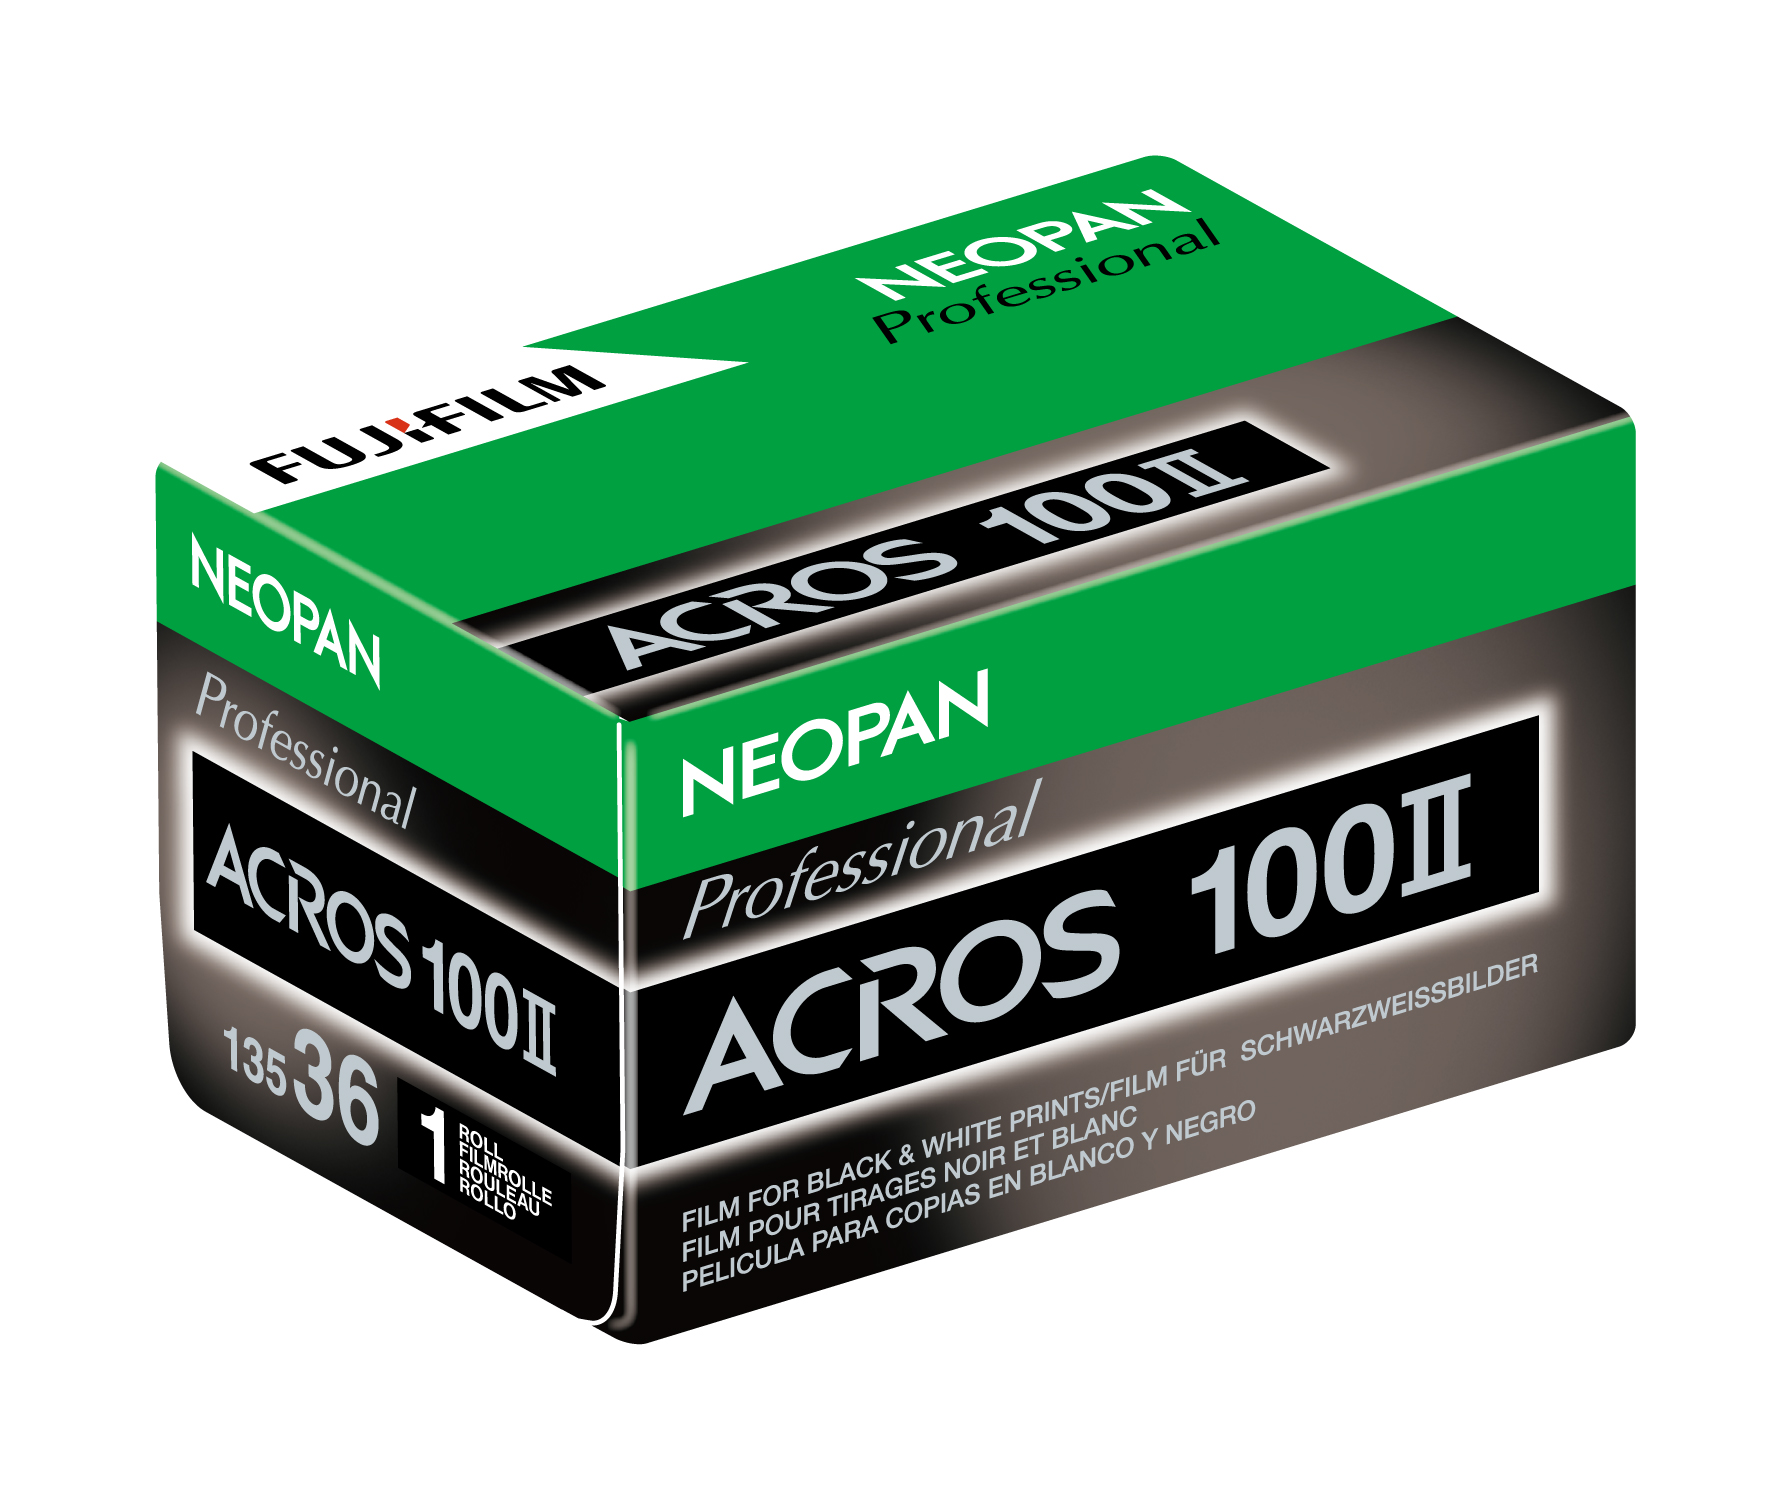 Image of Neopan 100 and film